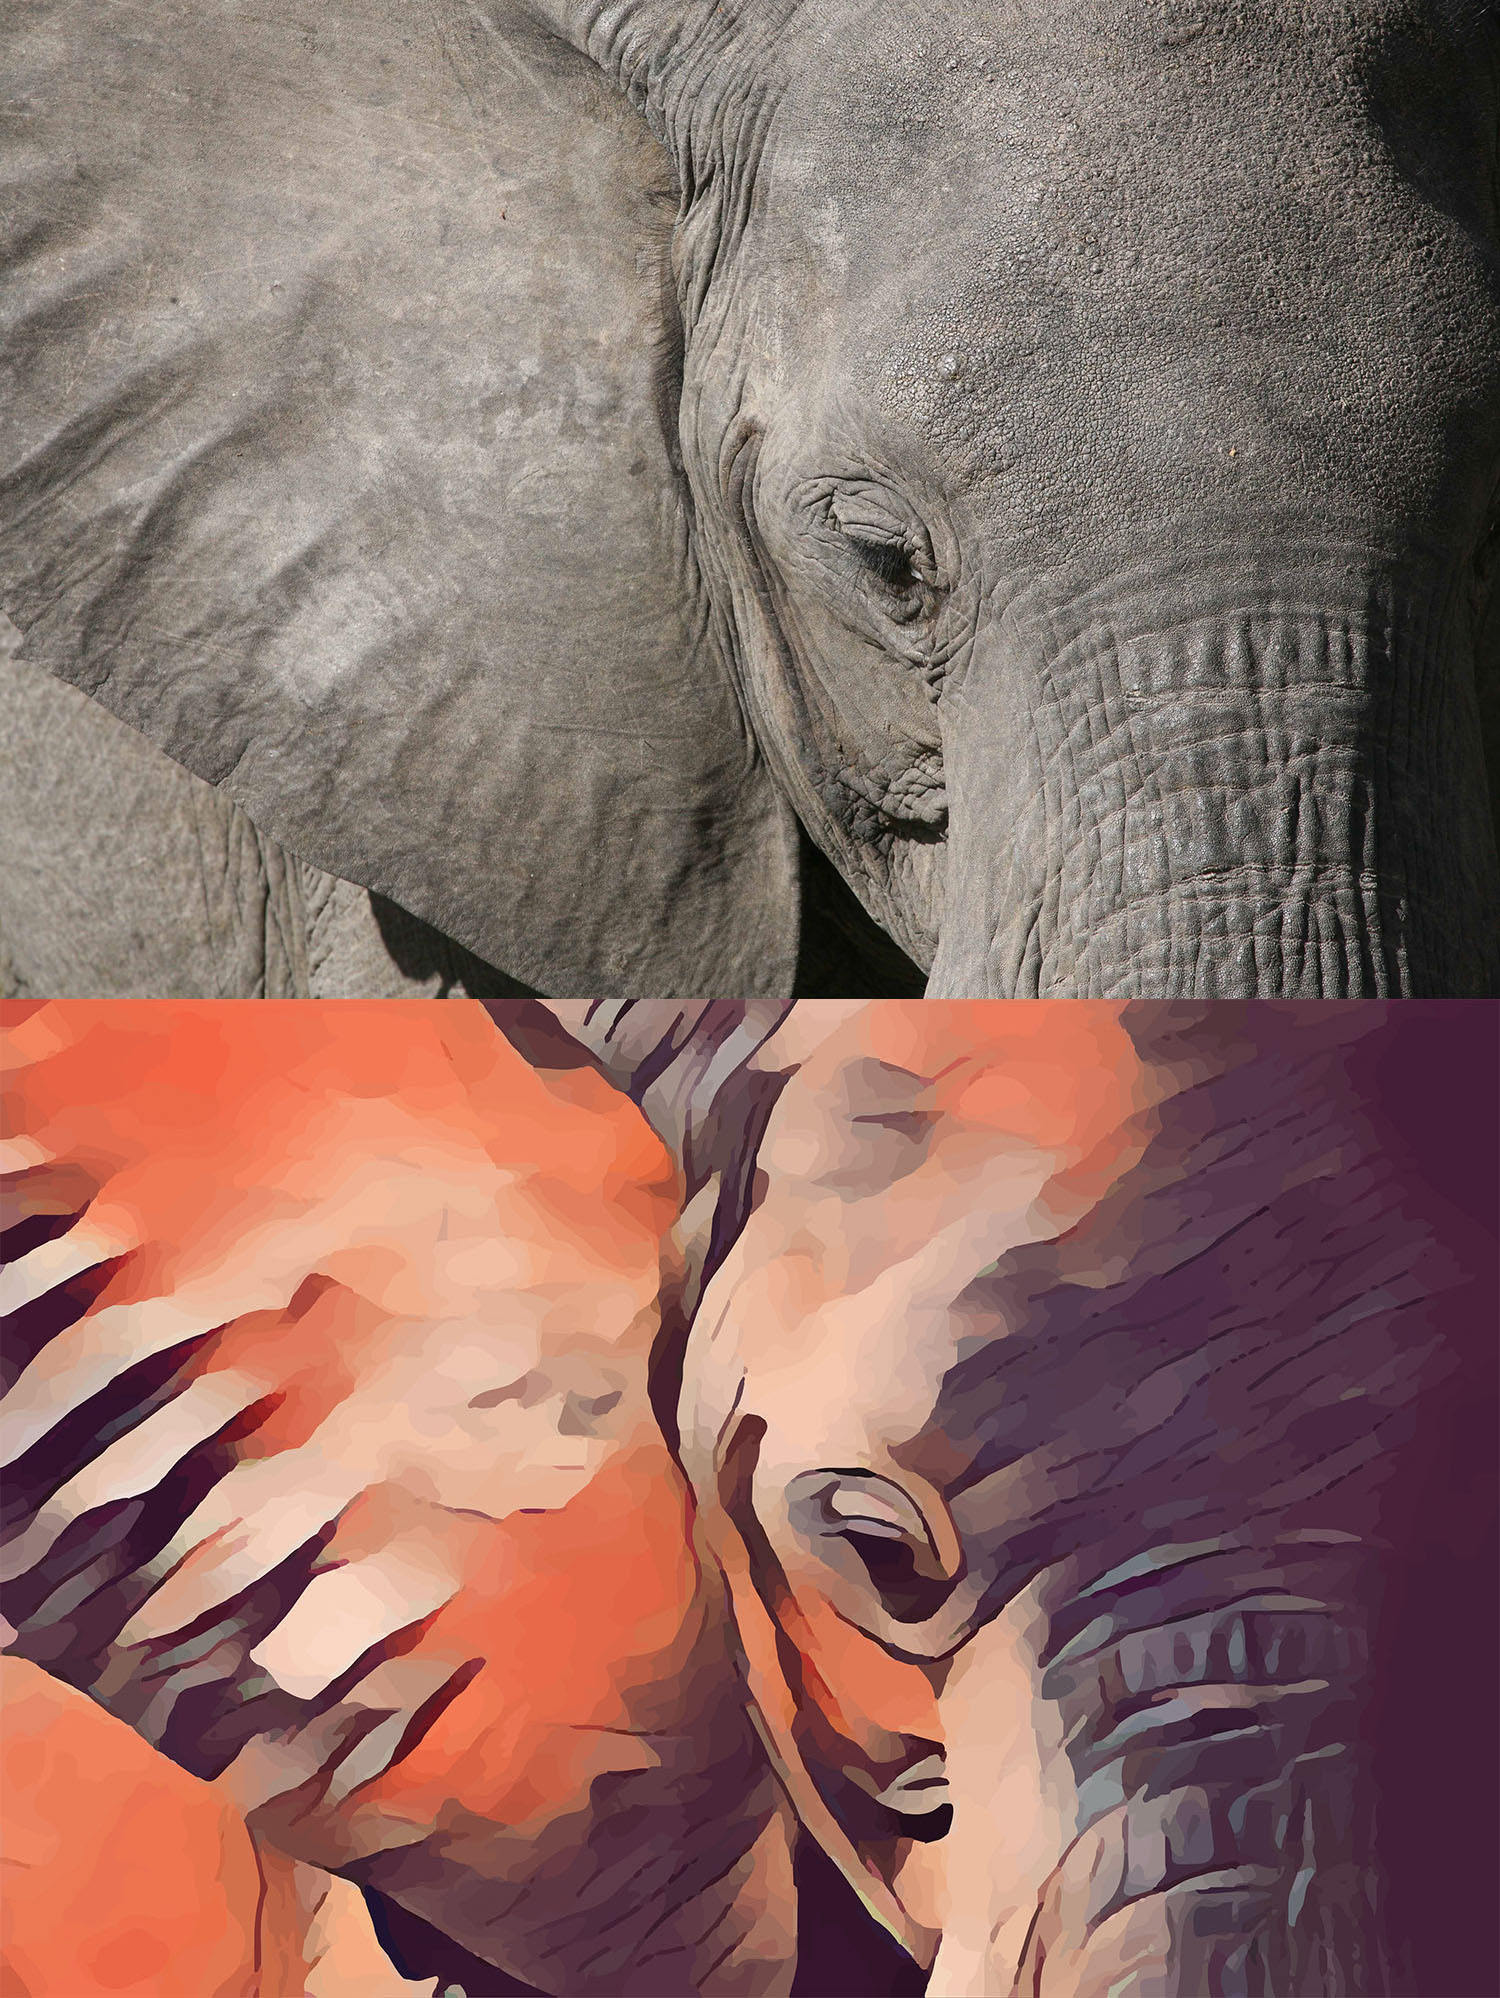 Before and after stylized image of an elephant's ear